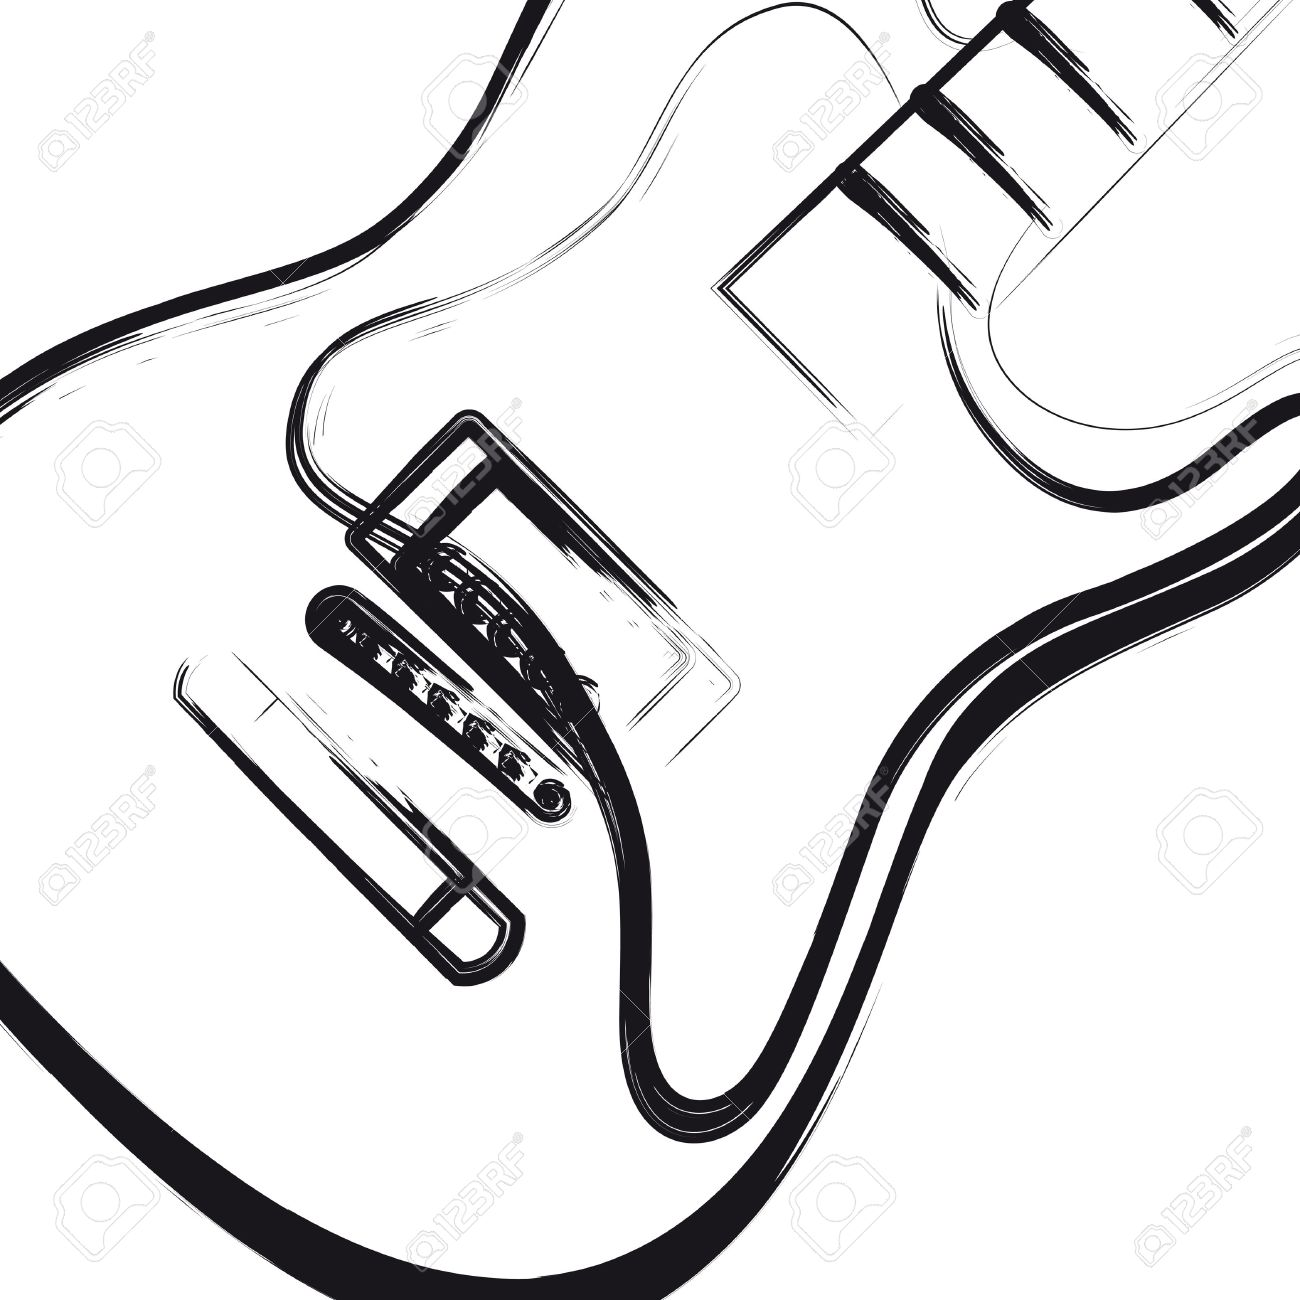 1300x1300 Electric Guitar Hand Drawn, You Can Easy All Editable Royalty Free